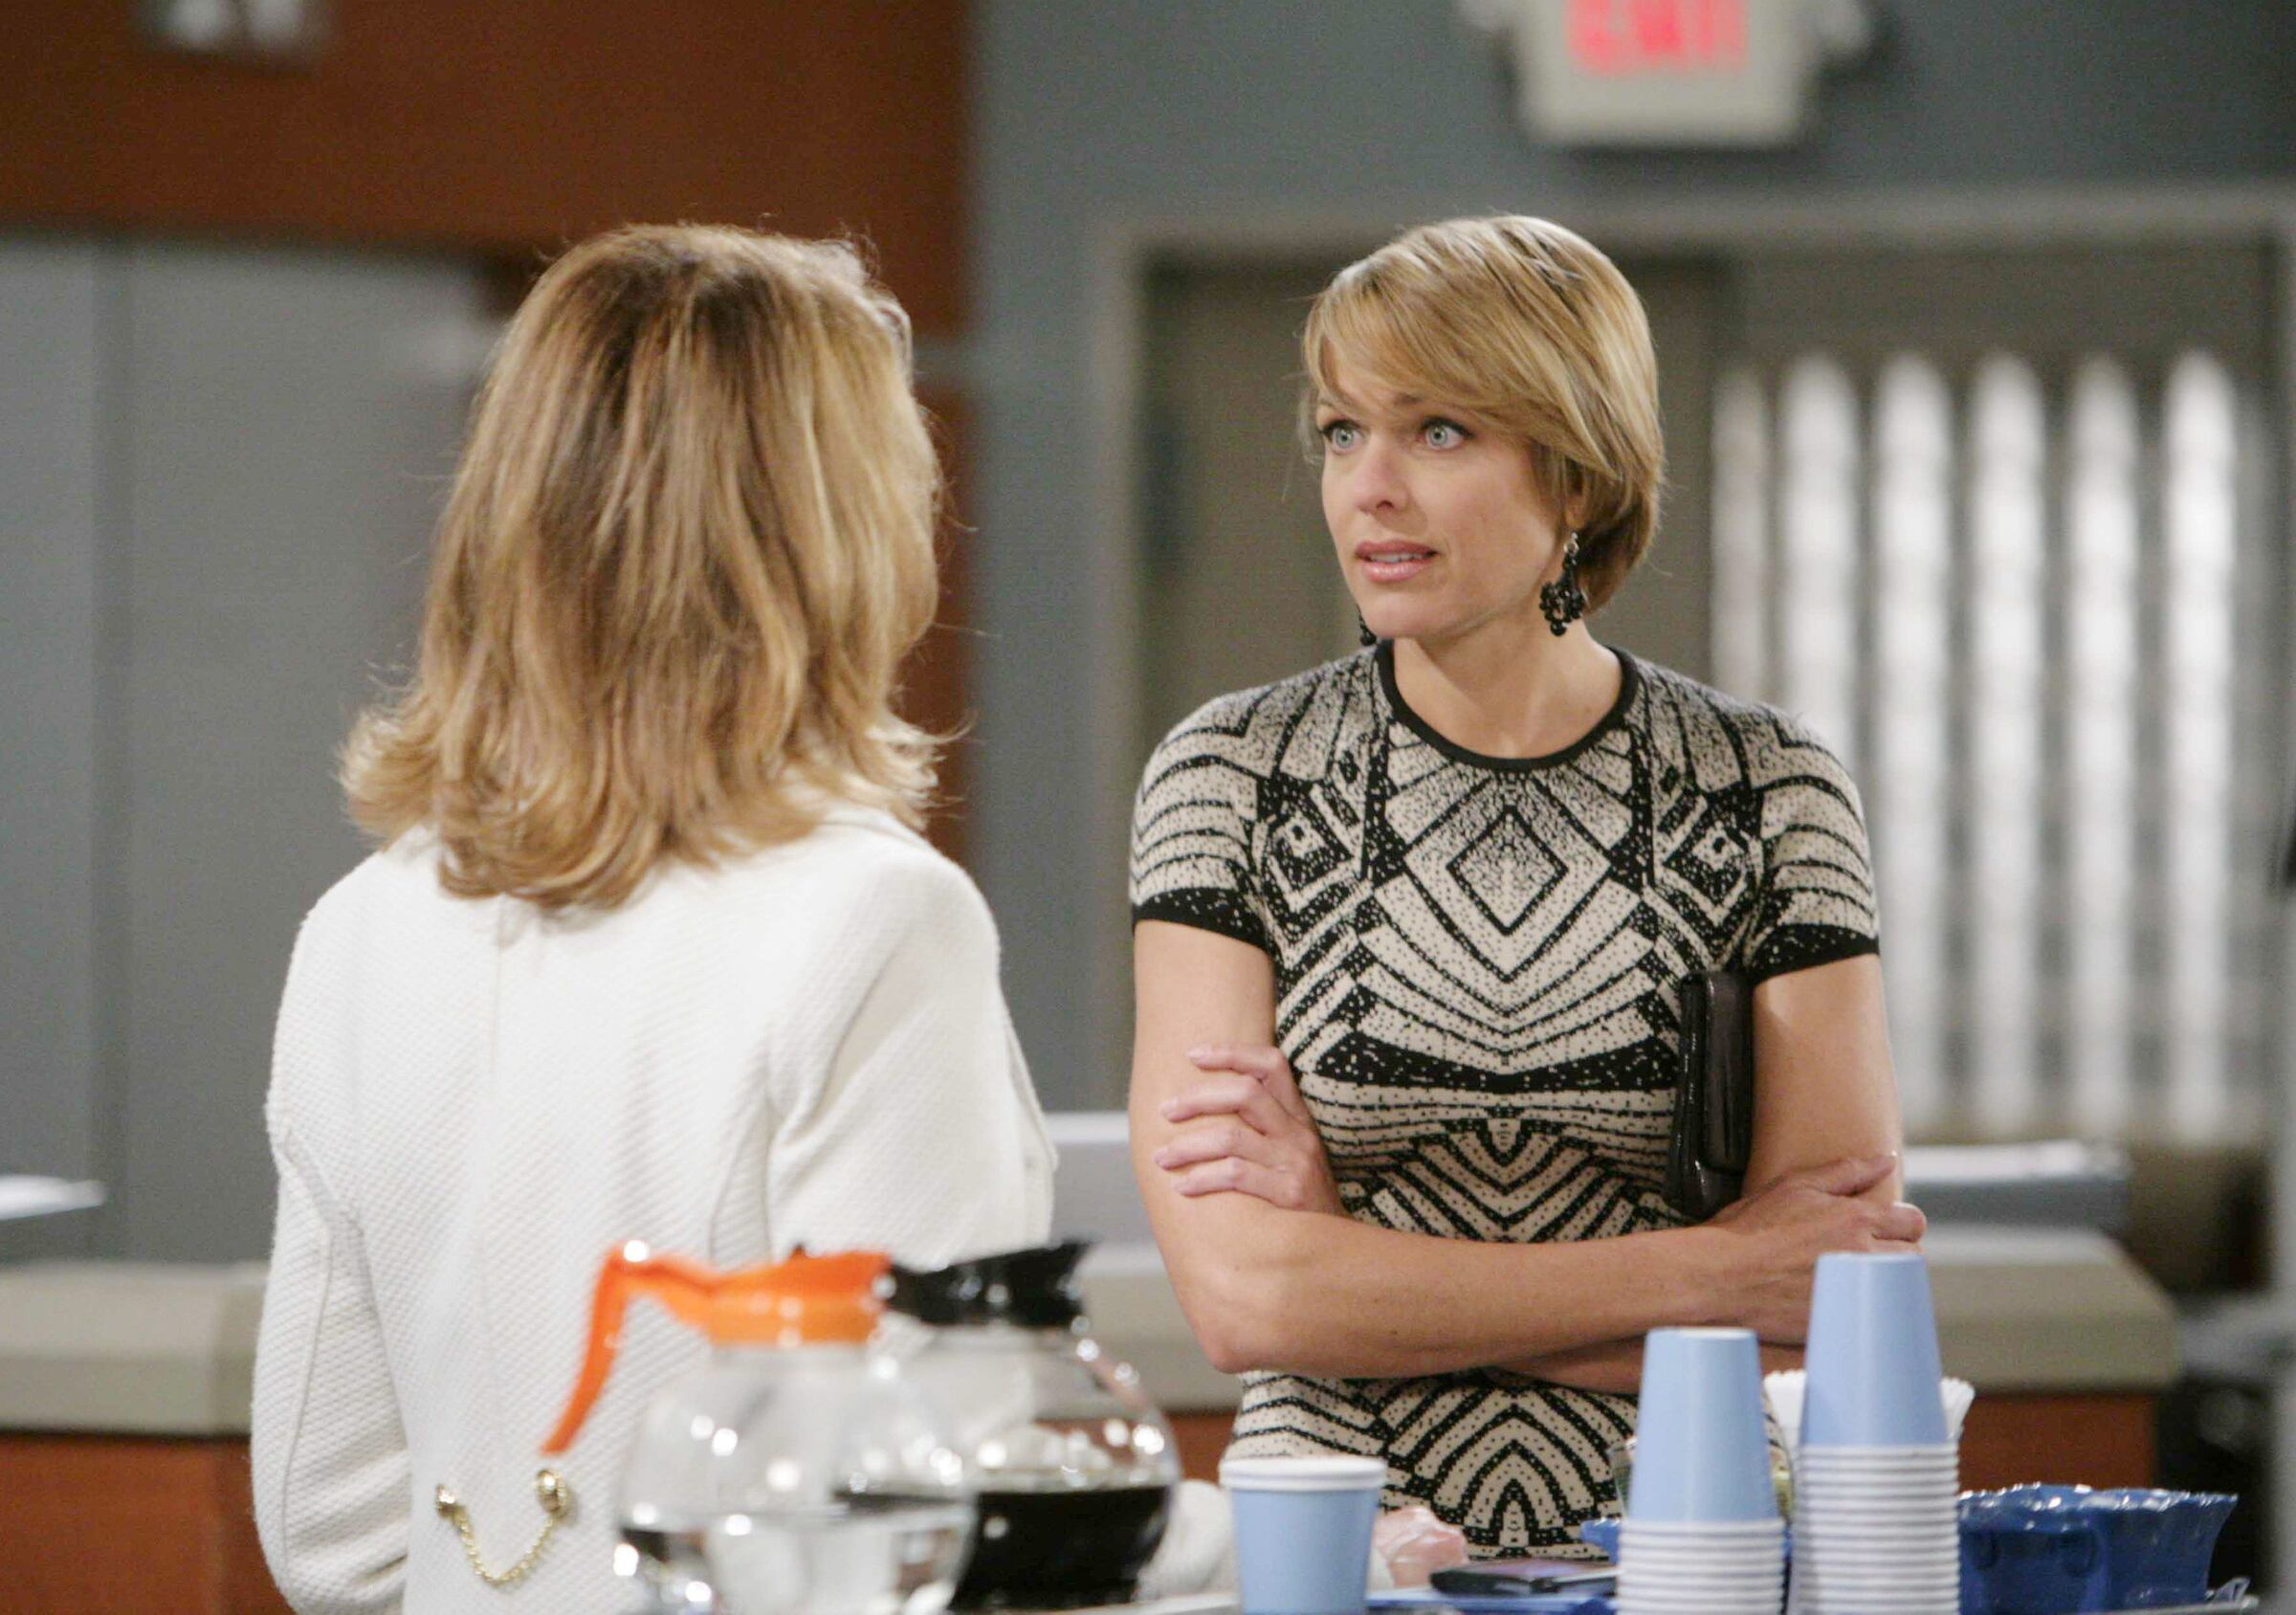 Nicole's mistake further fuels Marlena's suspicions.